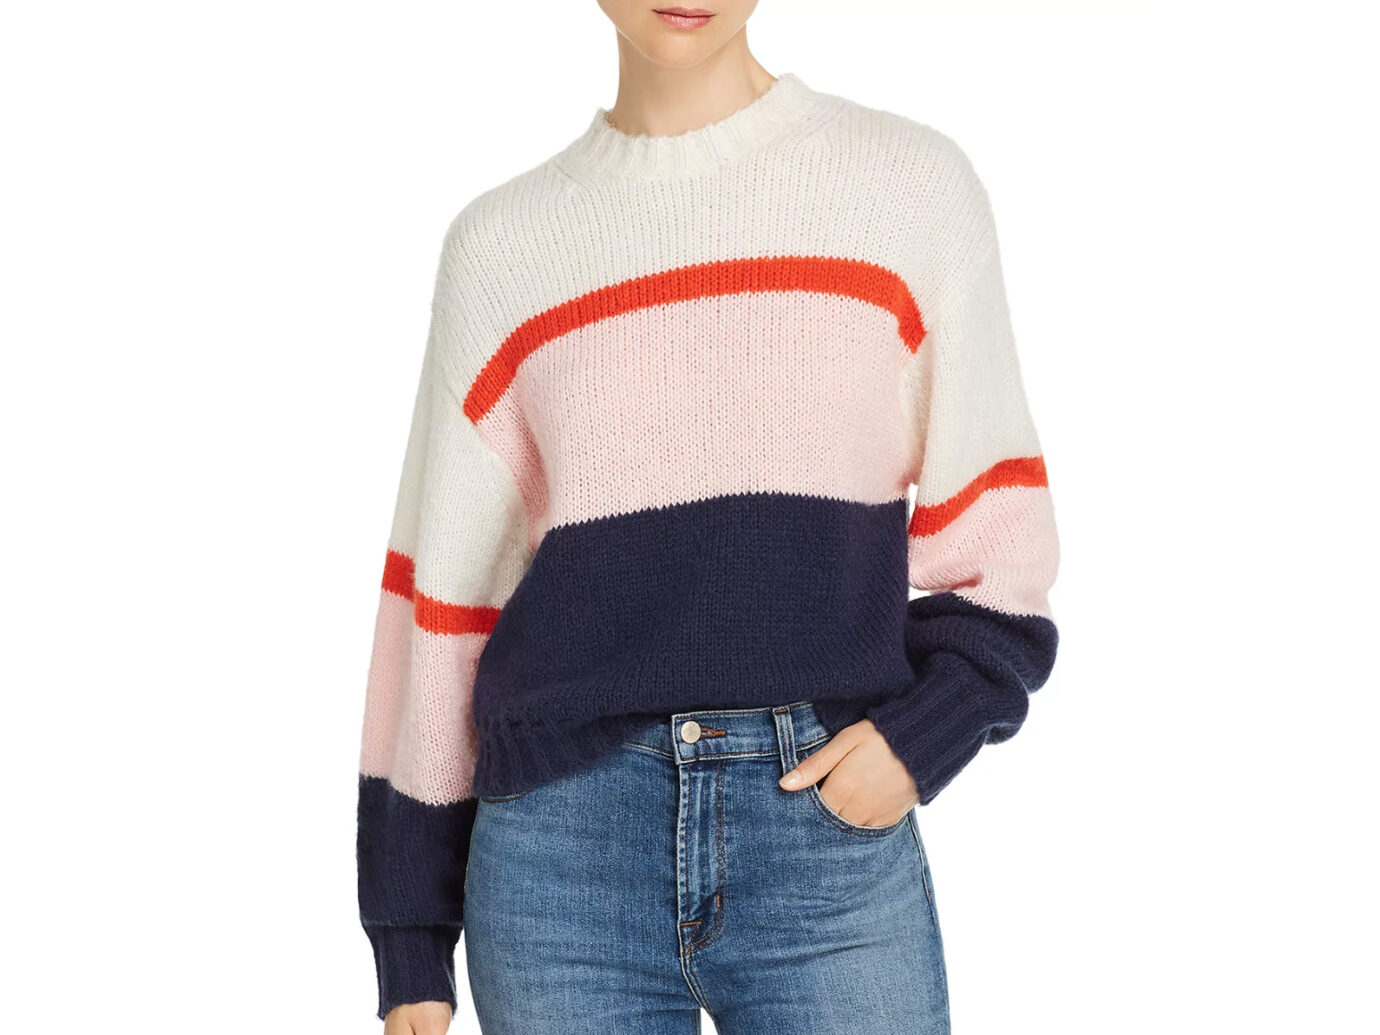 Rebecca Minkoff Liliana Striped & Color-Blocked Sweater